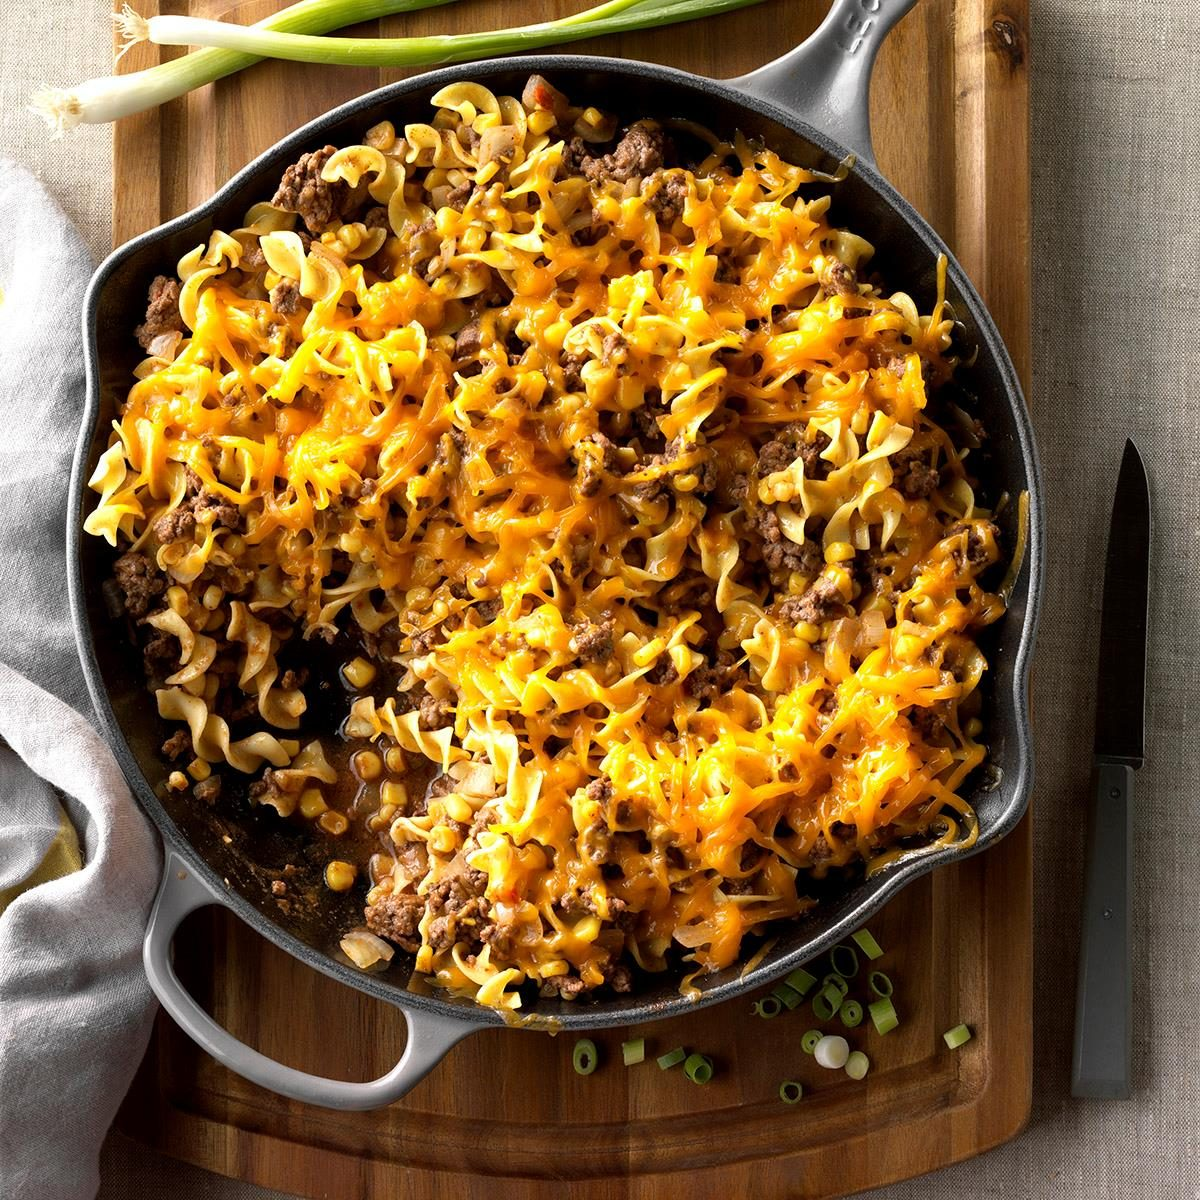 Meal Ideas For Ground Beef: Beef Skillet Supper Recipe